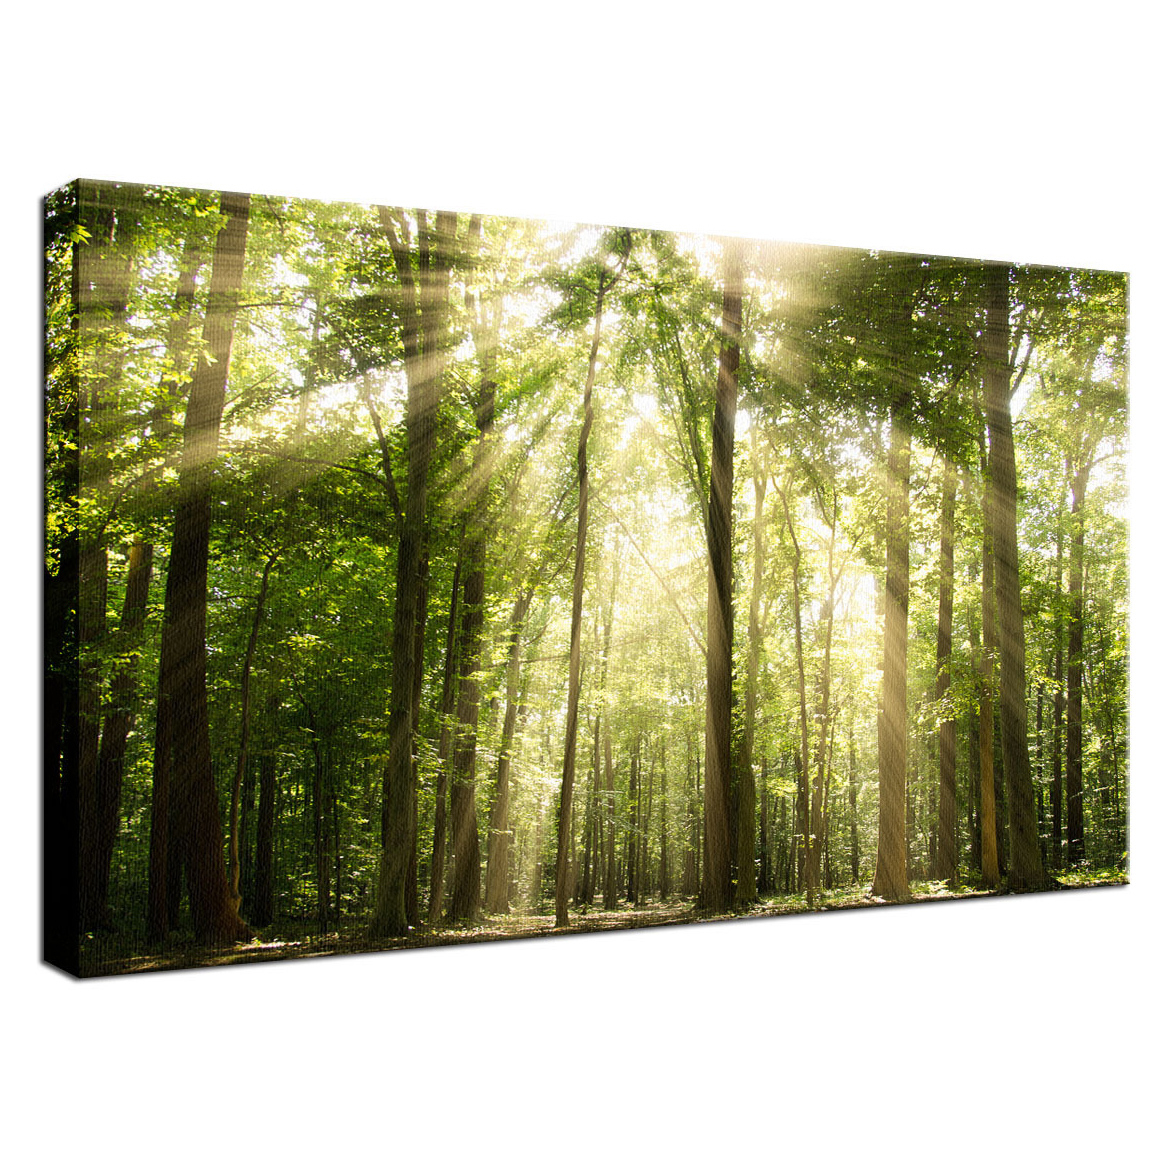 "Sun Rays Through Tree Tops Rural Landscape Photography Fine Art Stretched Canvas Photo Print Collectible Wall Art - 11"" x 14 5a454353e2246143f1530ae4"